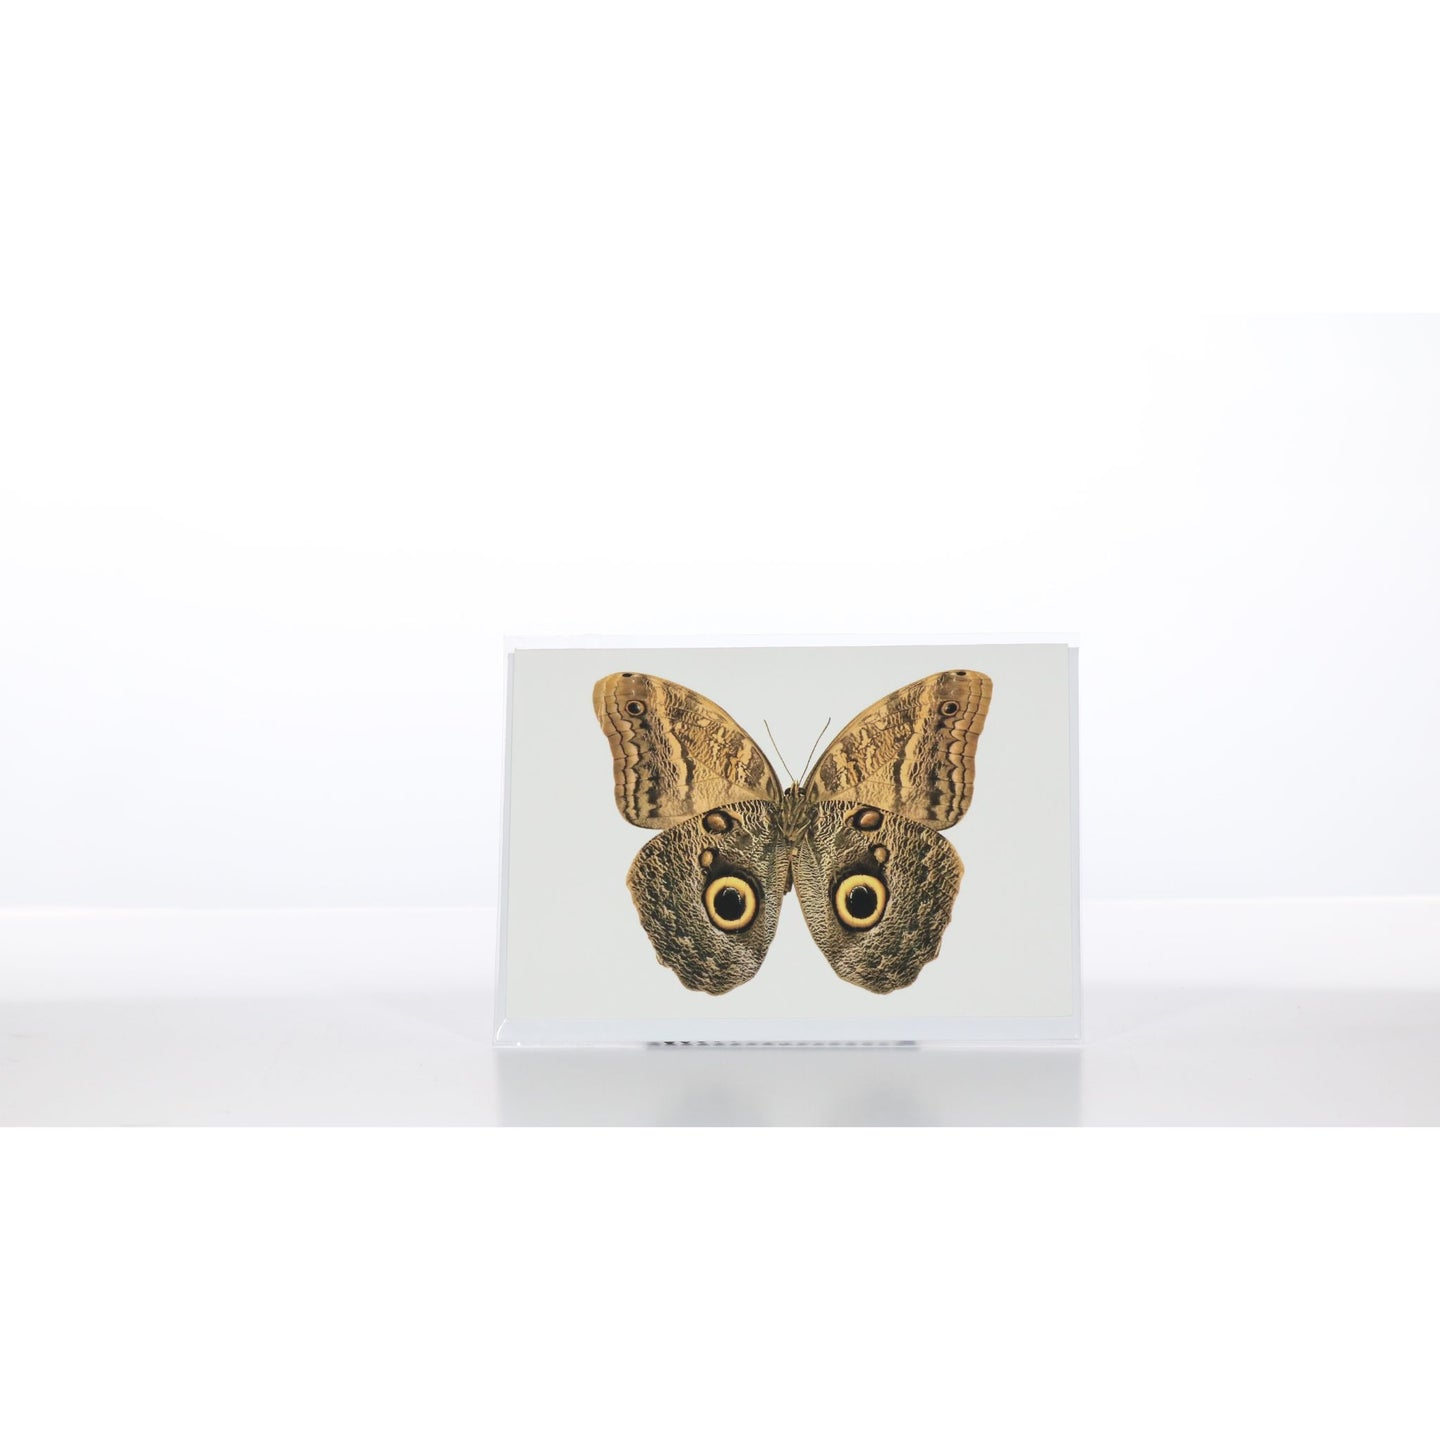 Greeting Card GC20 - Insecta Etcetera